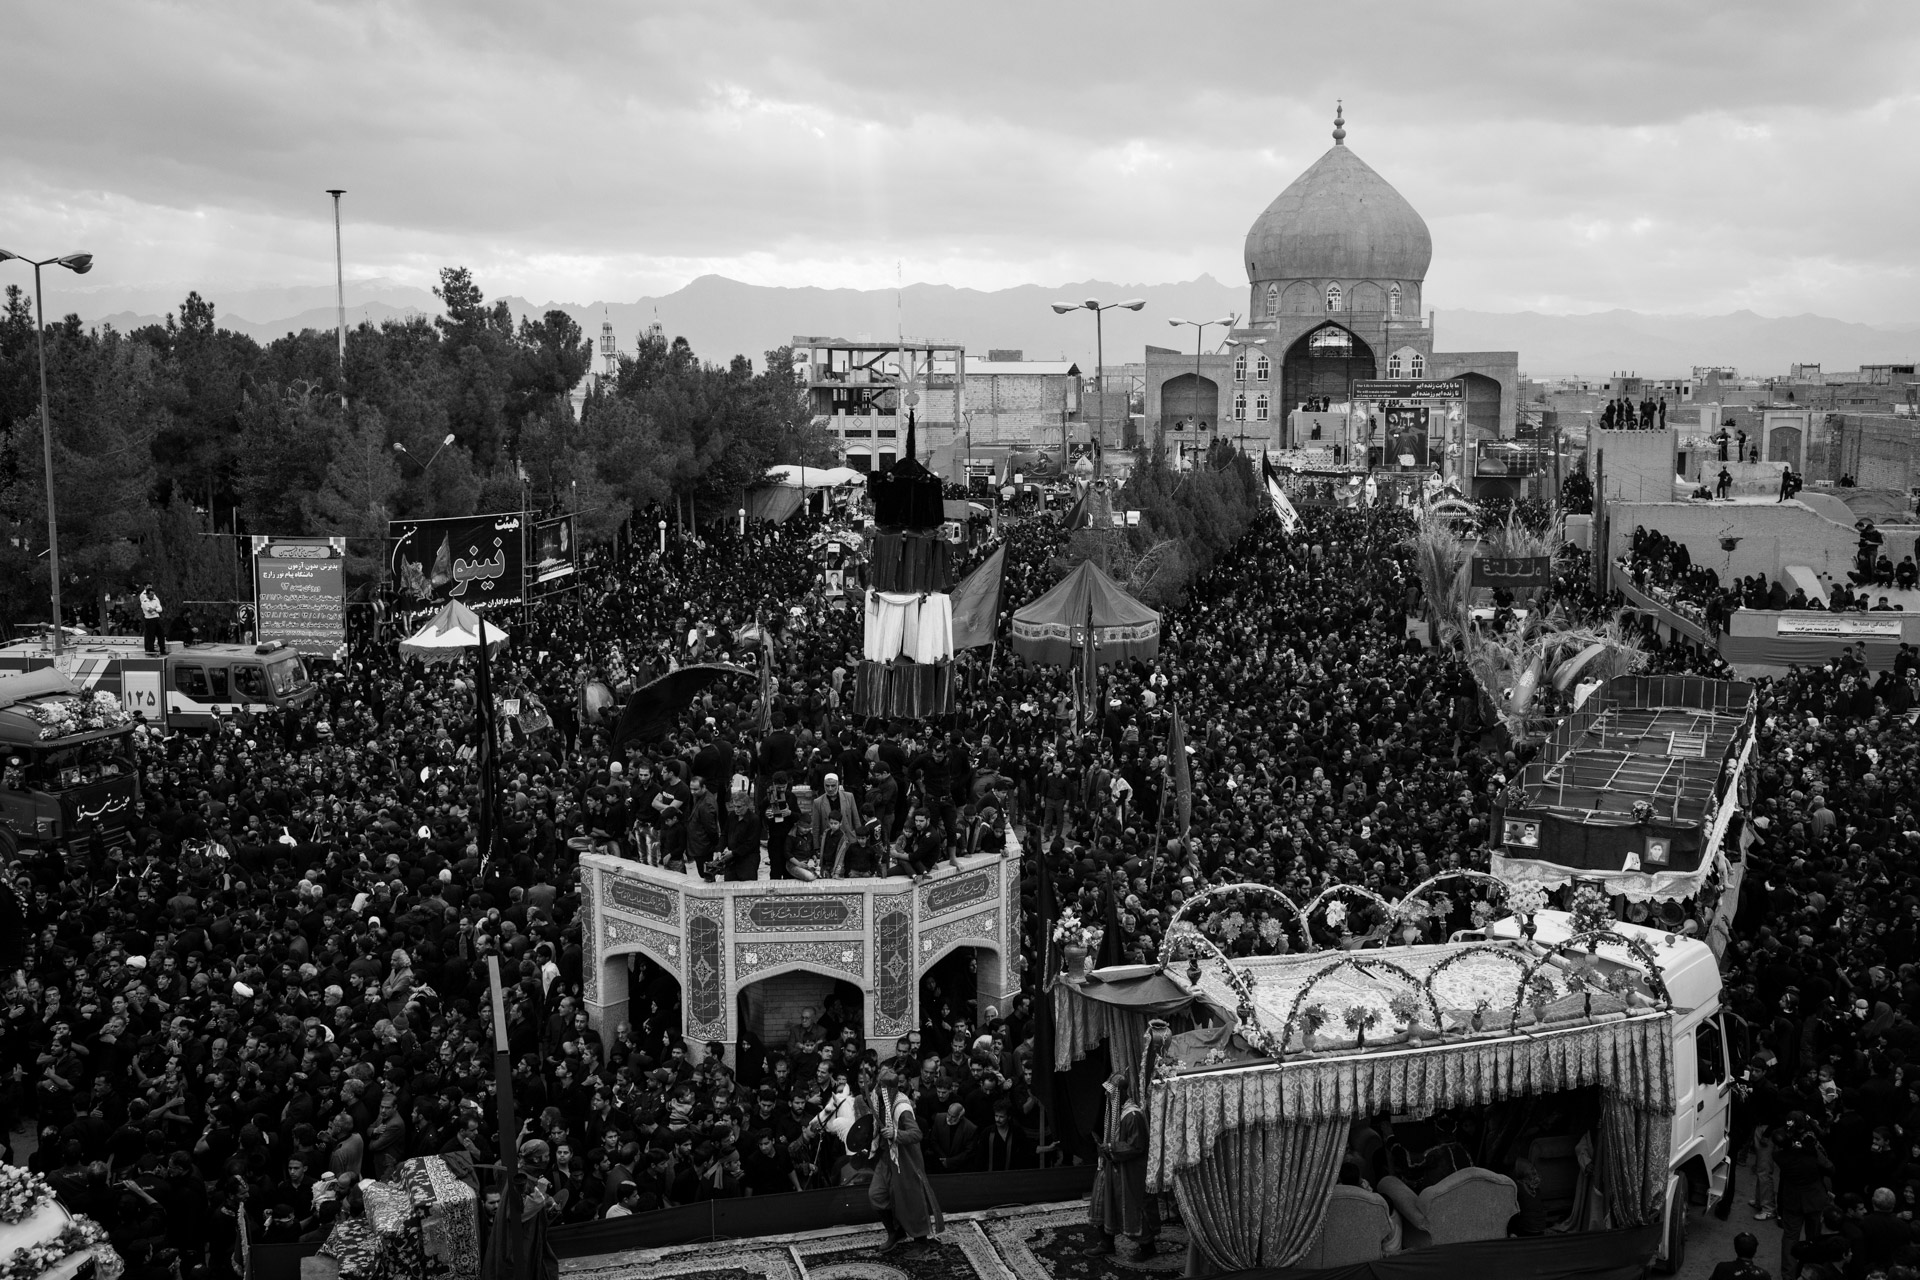 The main square of Zarach, where people from all over the area rally to celebrate Ashura. For this day, because it is a mourning day, everyone is dressed in black.